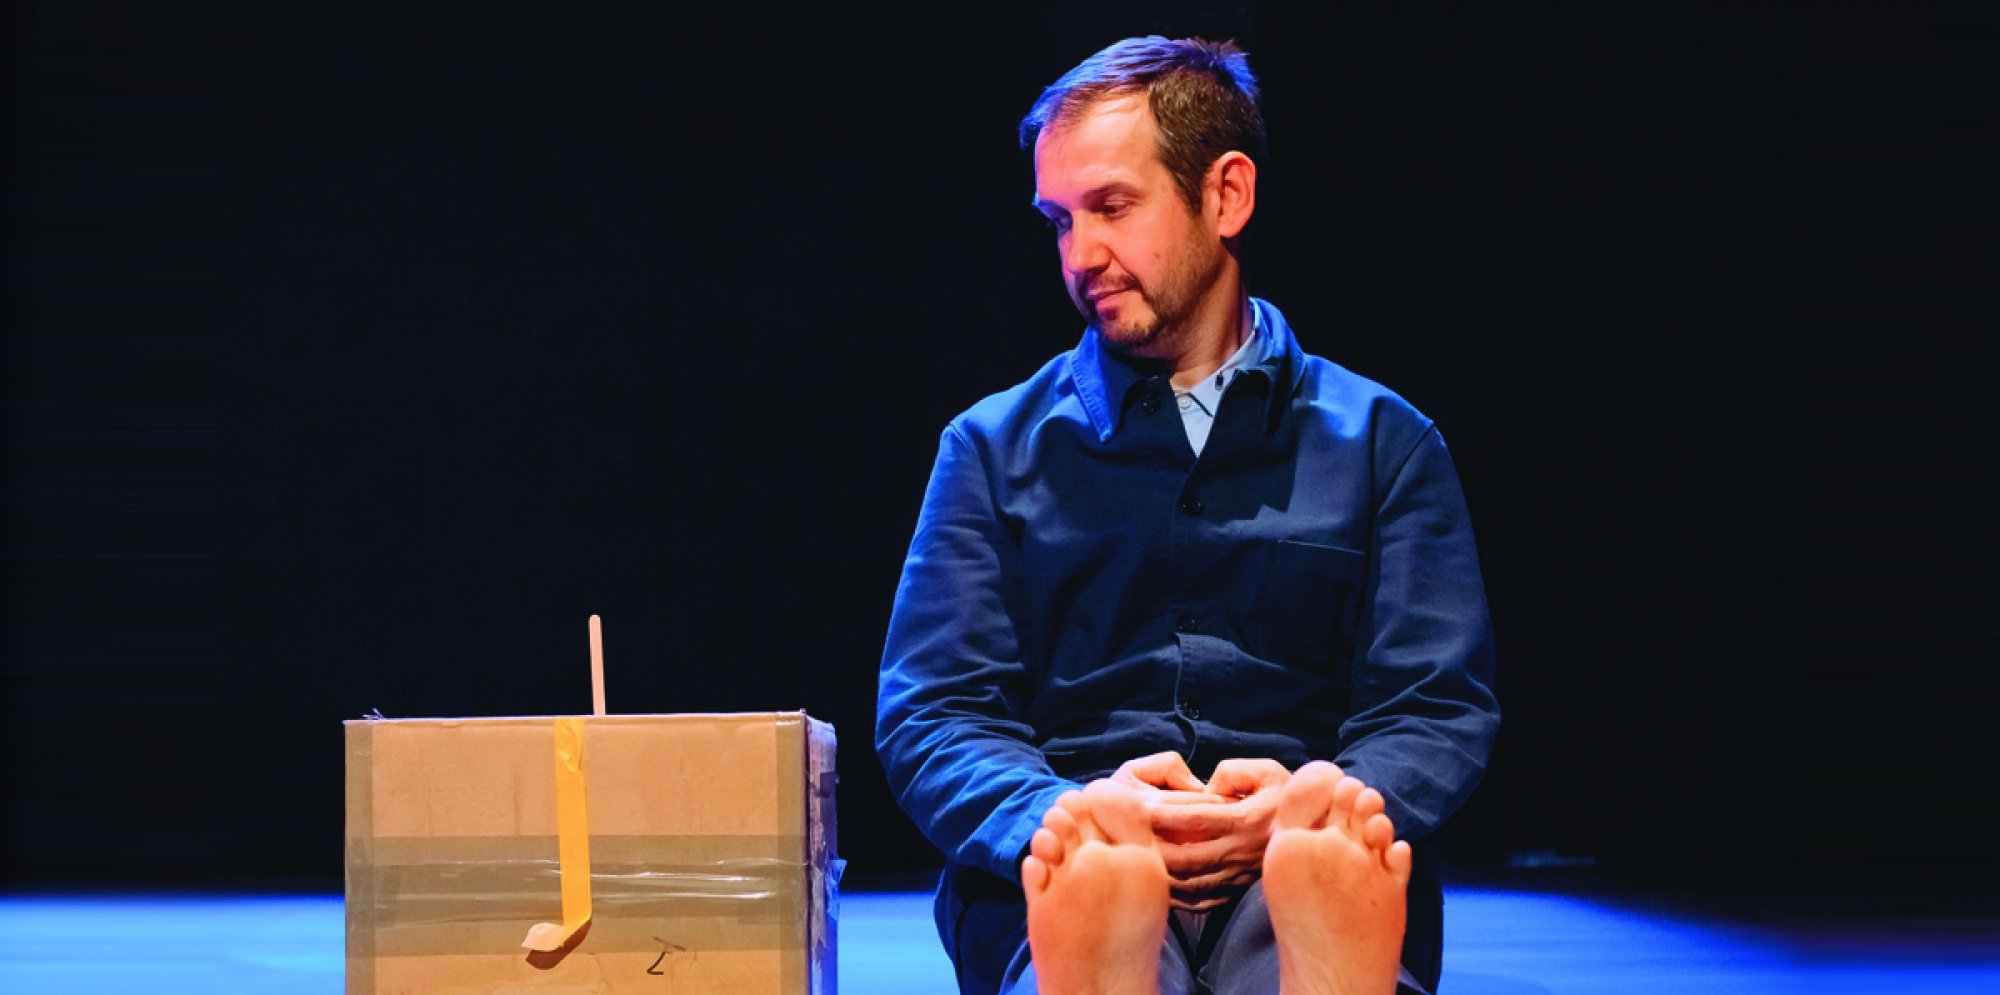 Stick by Me: on a dark stage sits a man looking down at a box